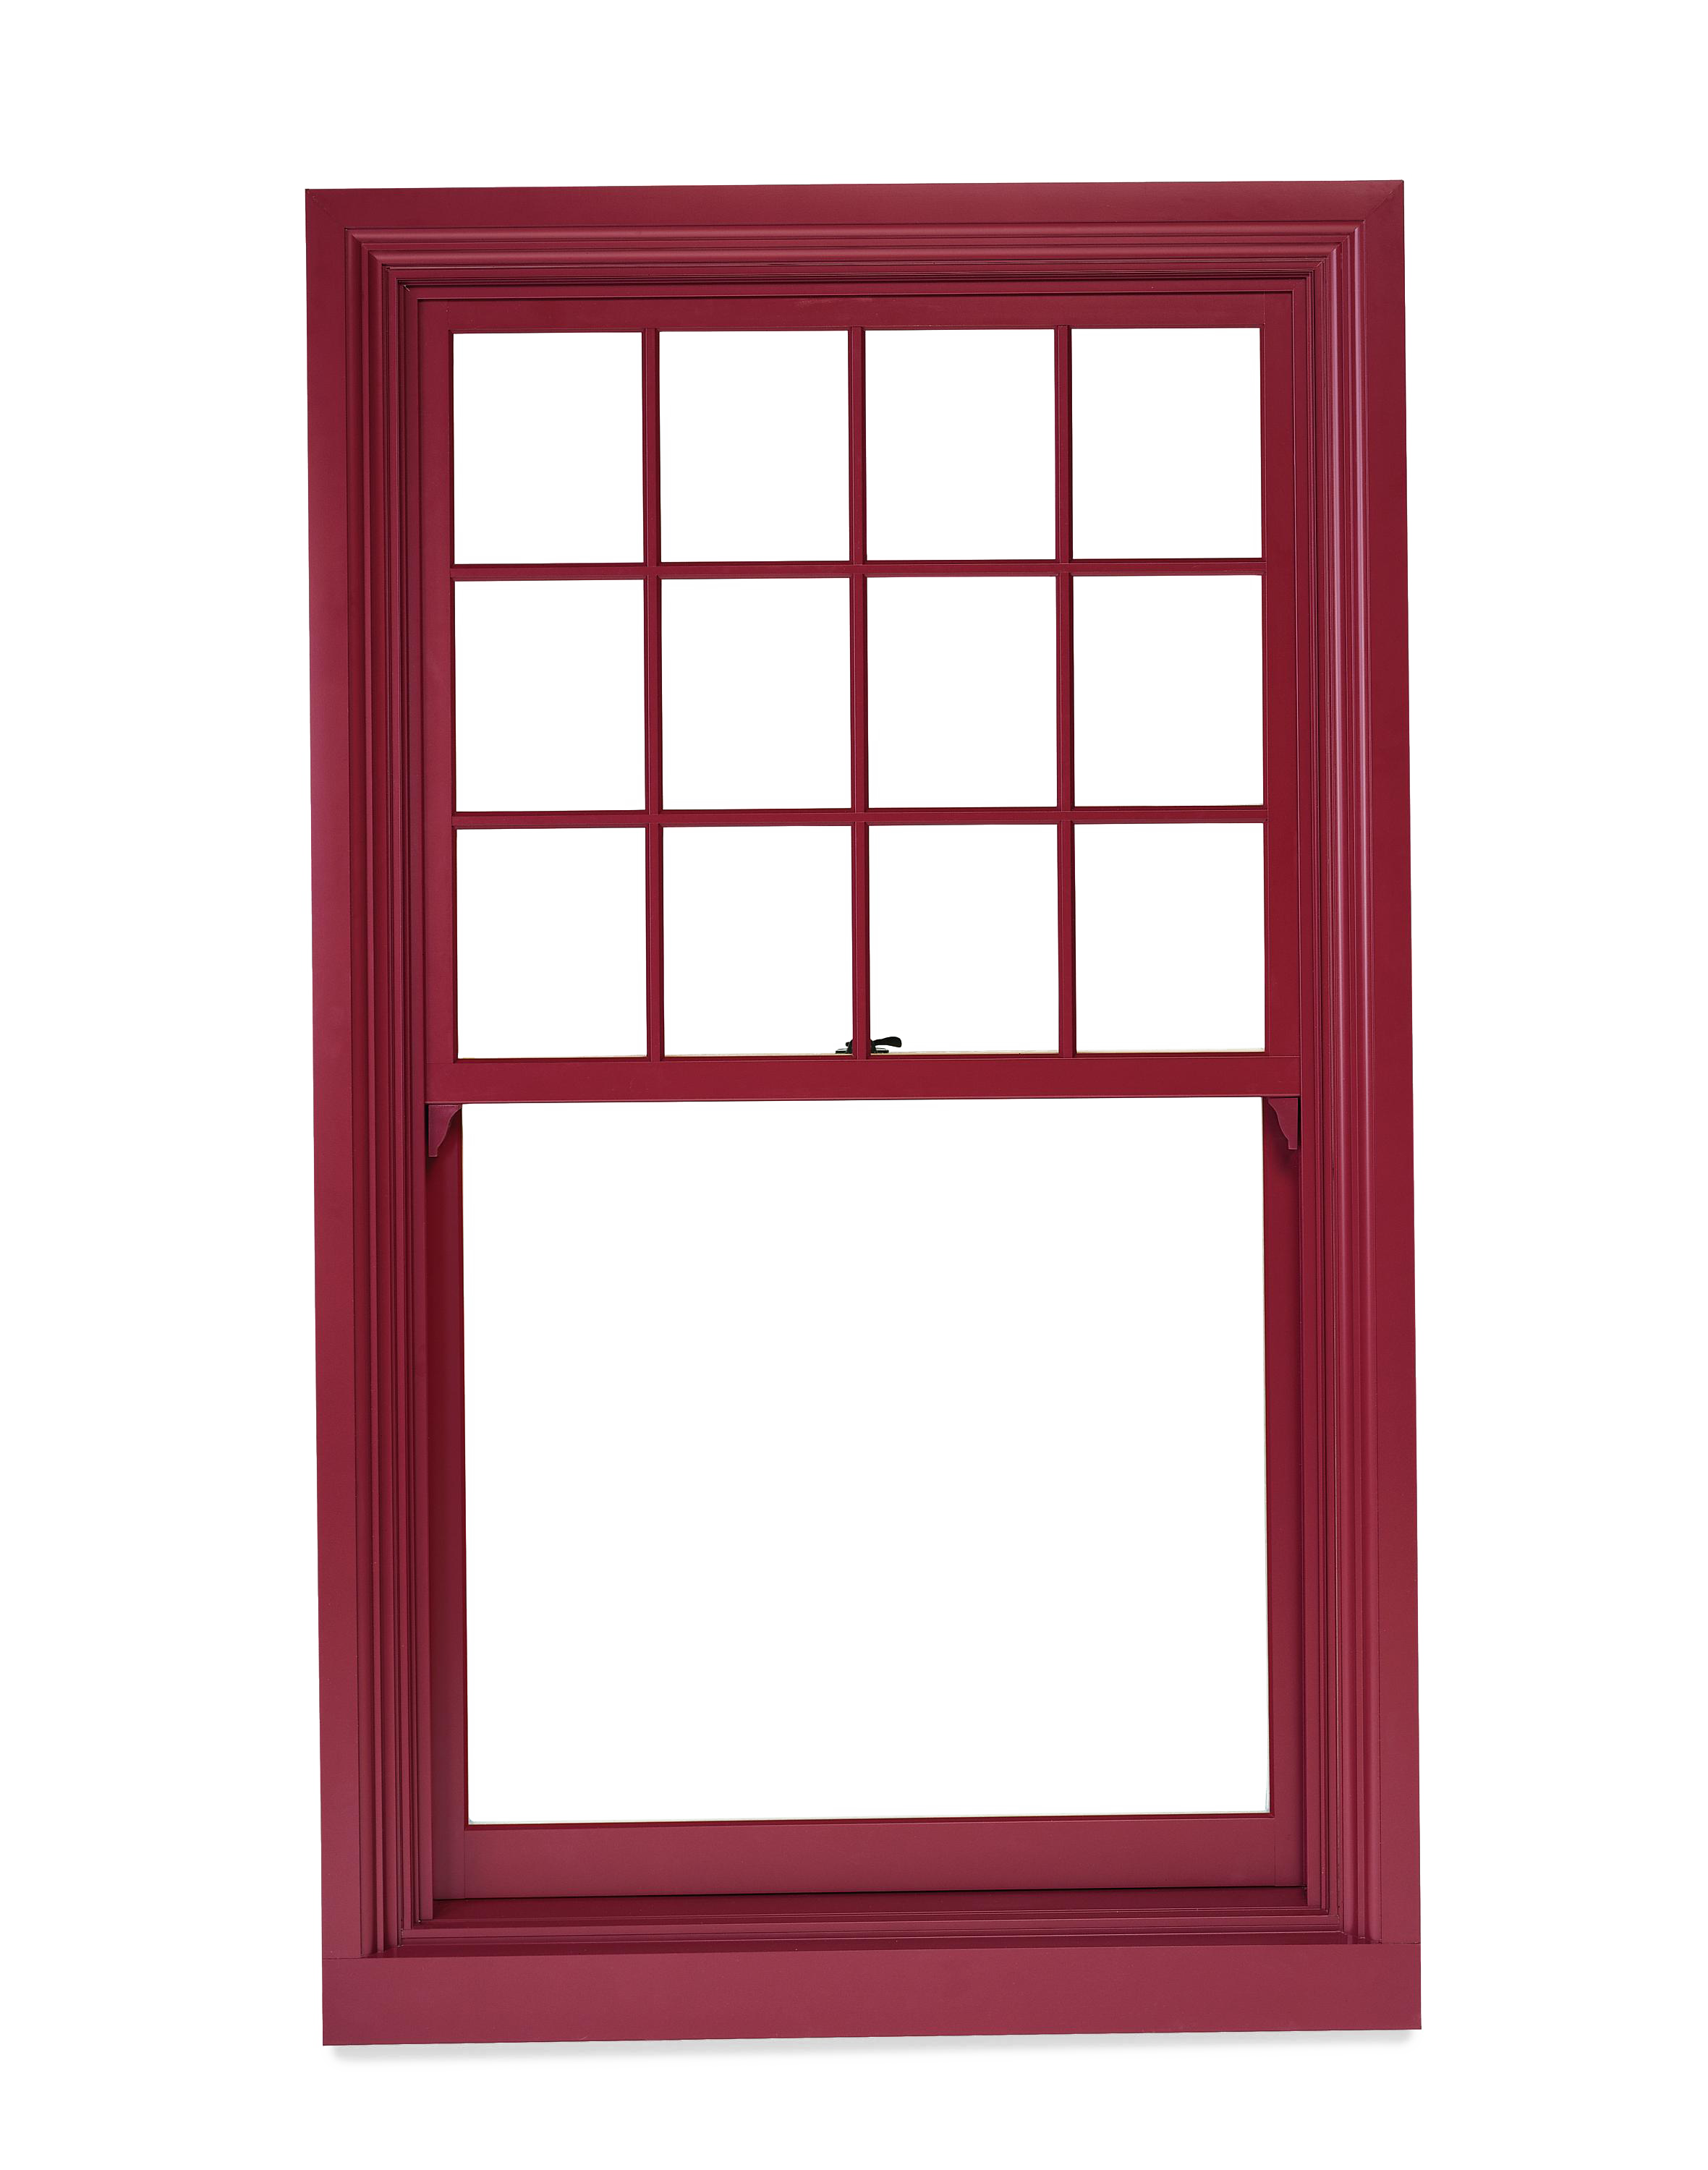 Marvin a complete window and door showroom by eldredge for Marvin single hung windows